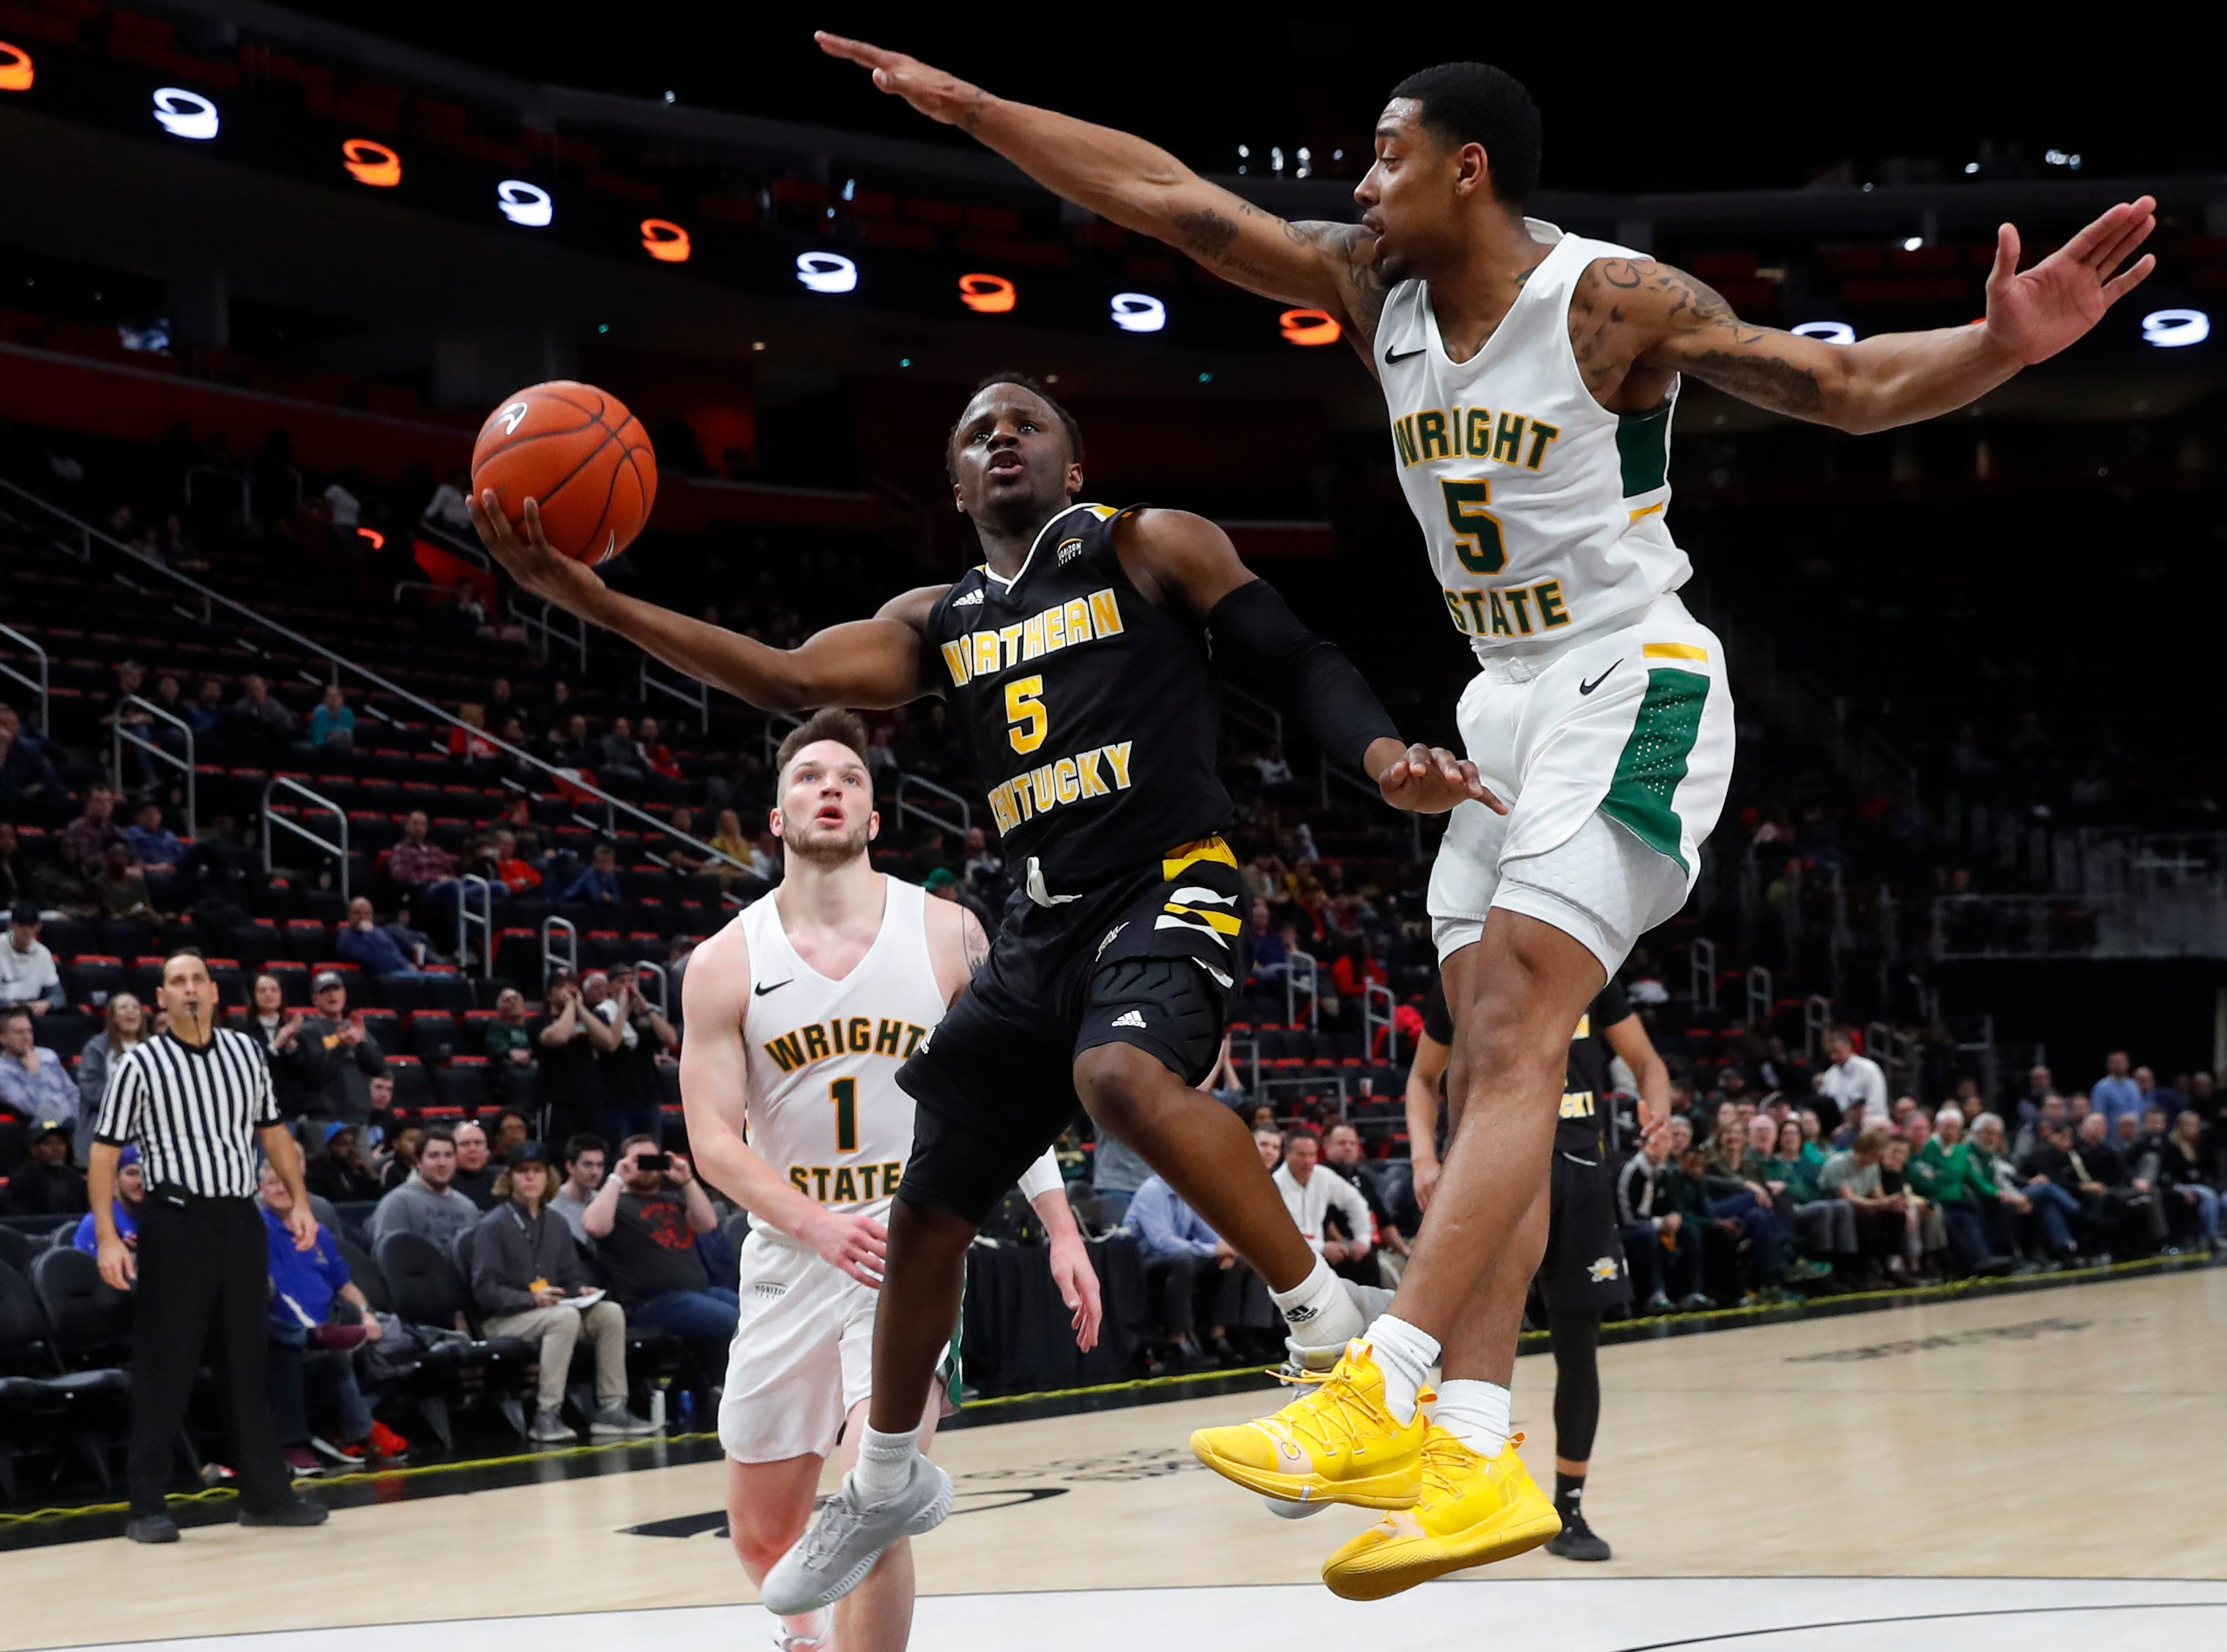 Northern Kentucky guard Zaynah Robinson (5) drives on Wright State guard Skyelar Potter (5) during the second half of an NCAA college basketball game for the Horizon League men's tournament championship in Detroit, Tuesday, March 12, 2019.